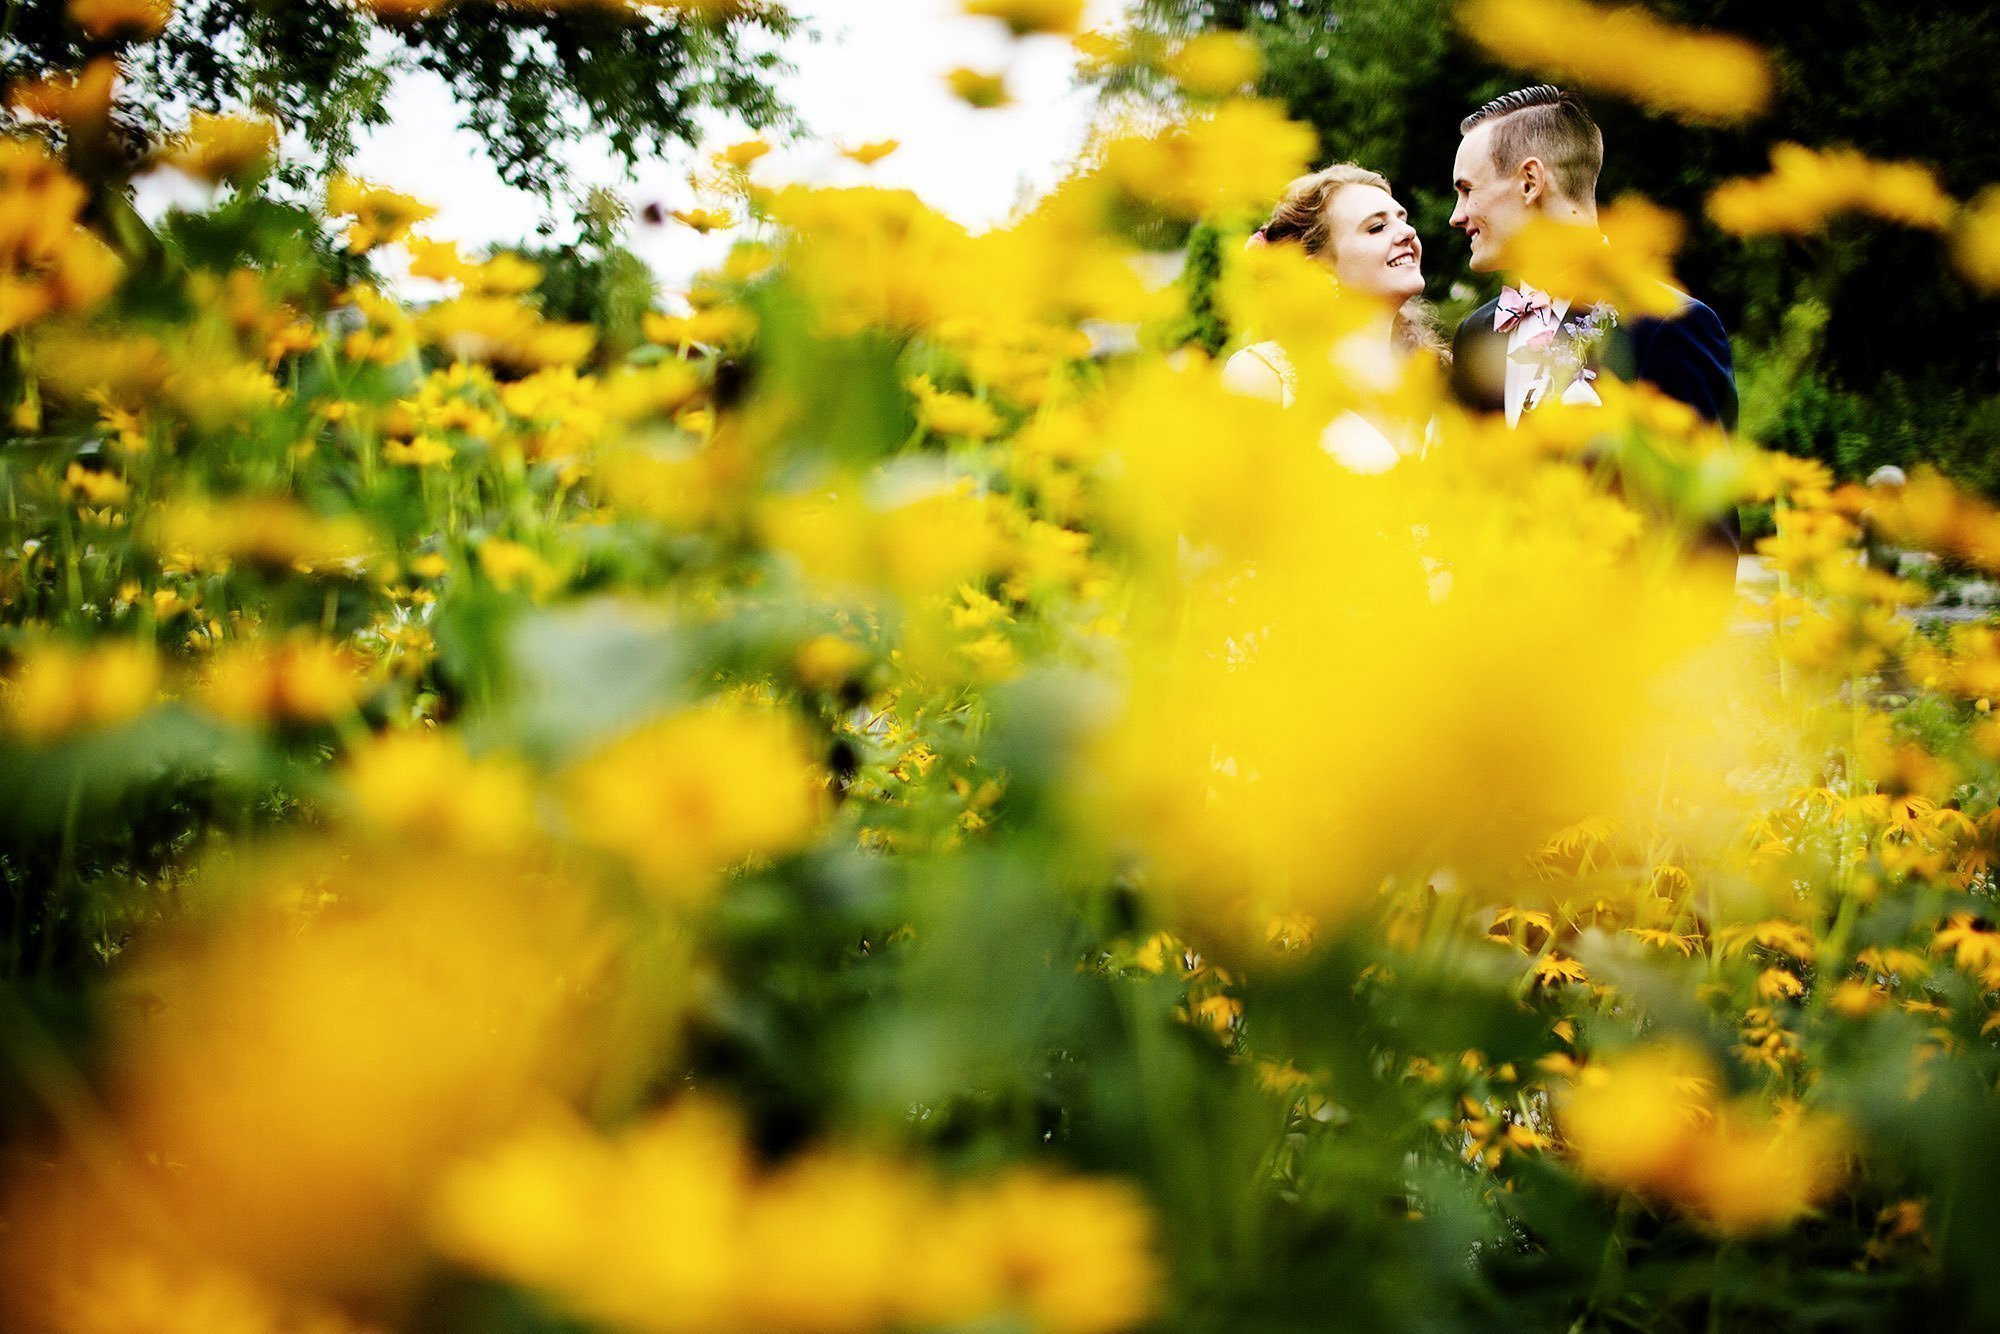 Shelburne Museum Wedding  I  The couple pose among beautiful yellow flowers following the ceremony.